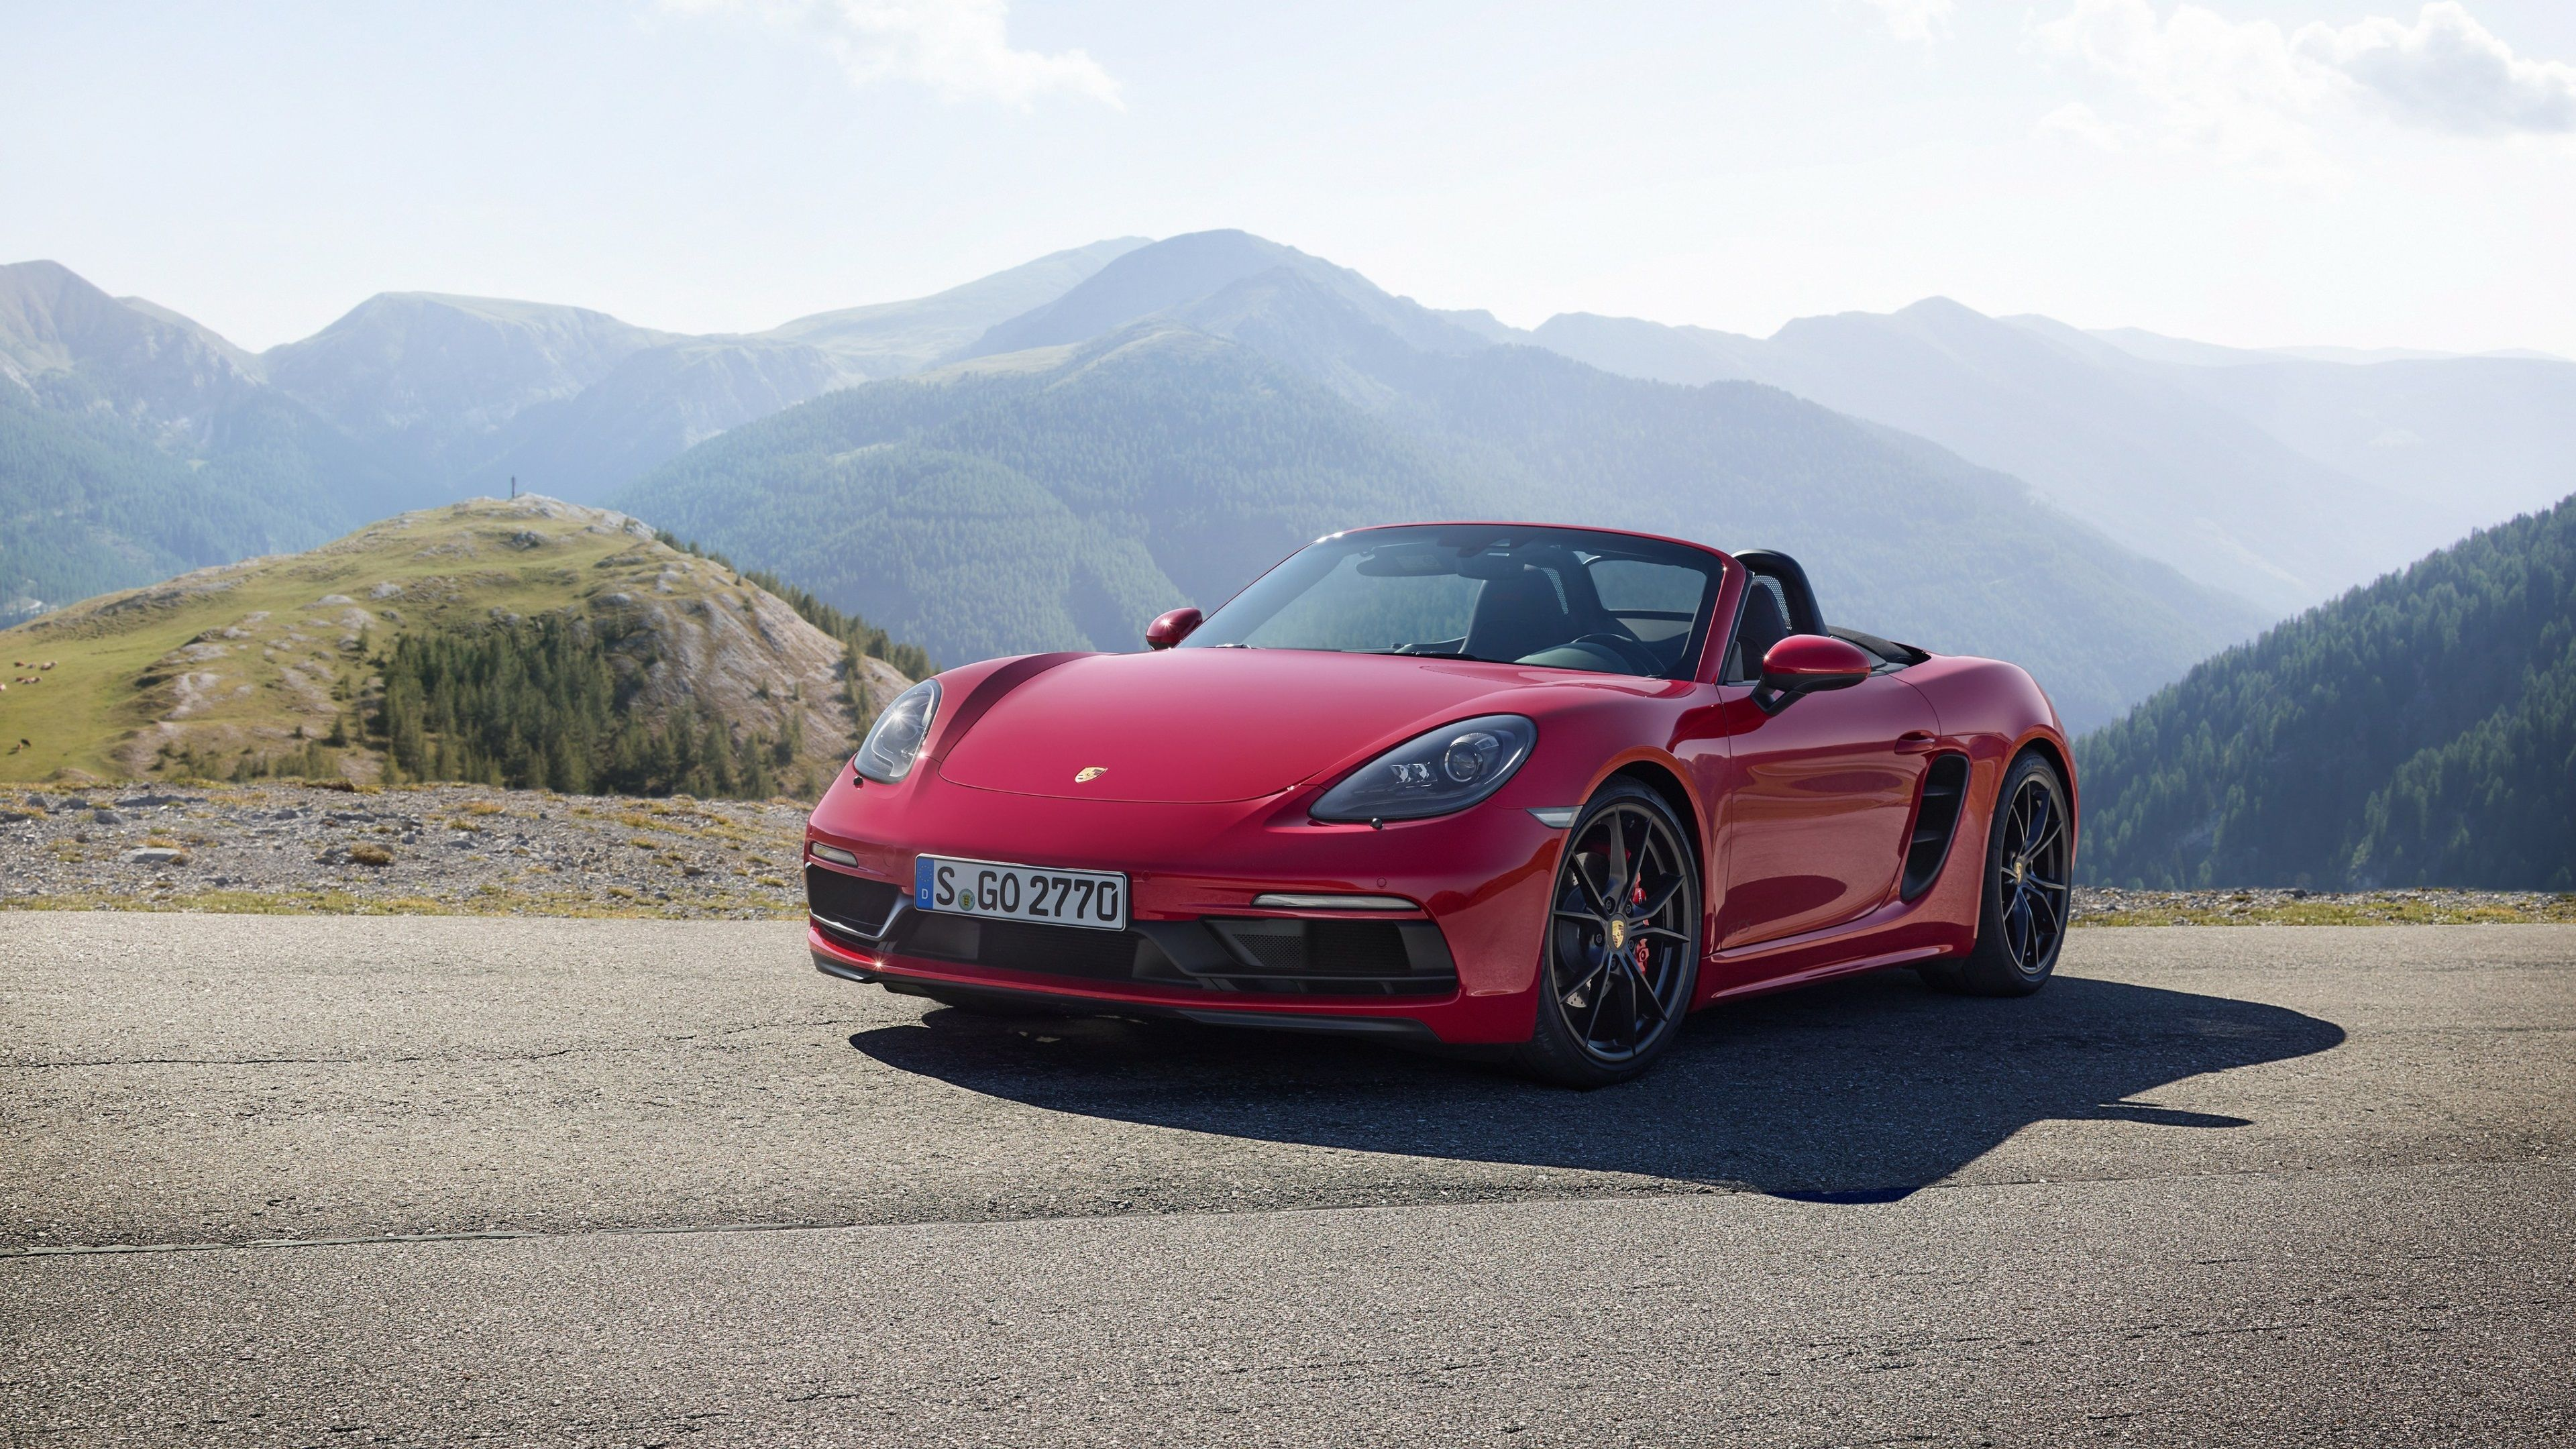 3840x2160 Porsche 718 Boxster Gts 4k Hd Image For Wallpaper